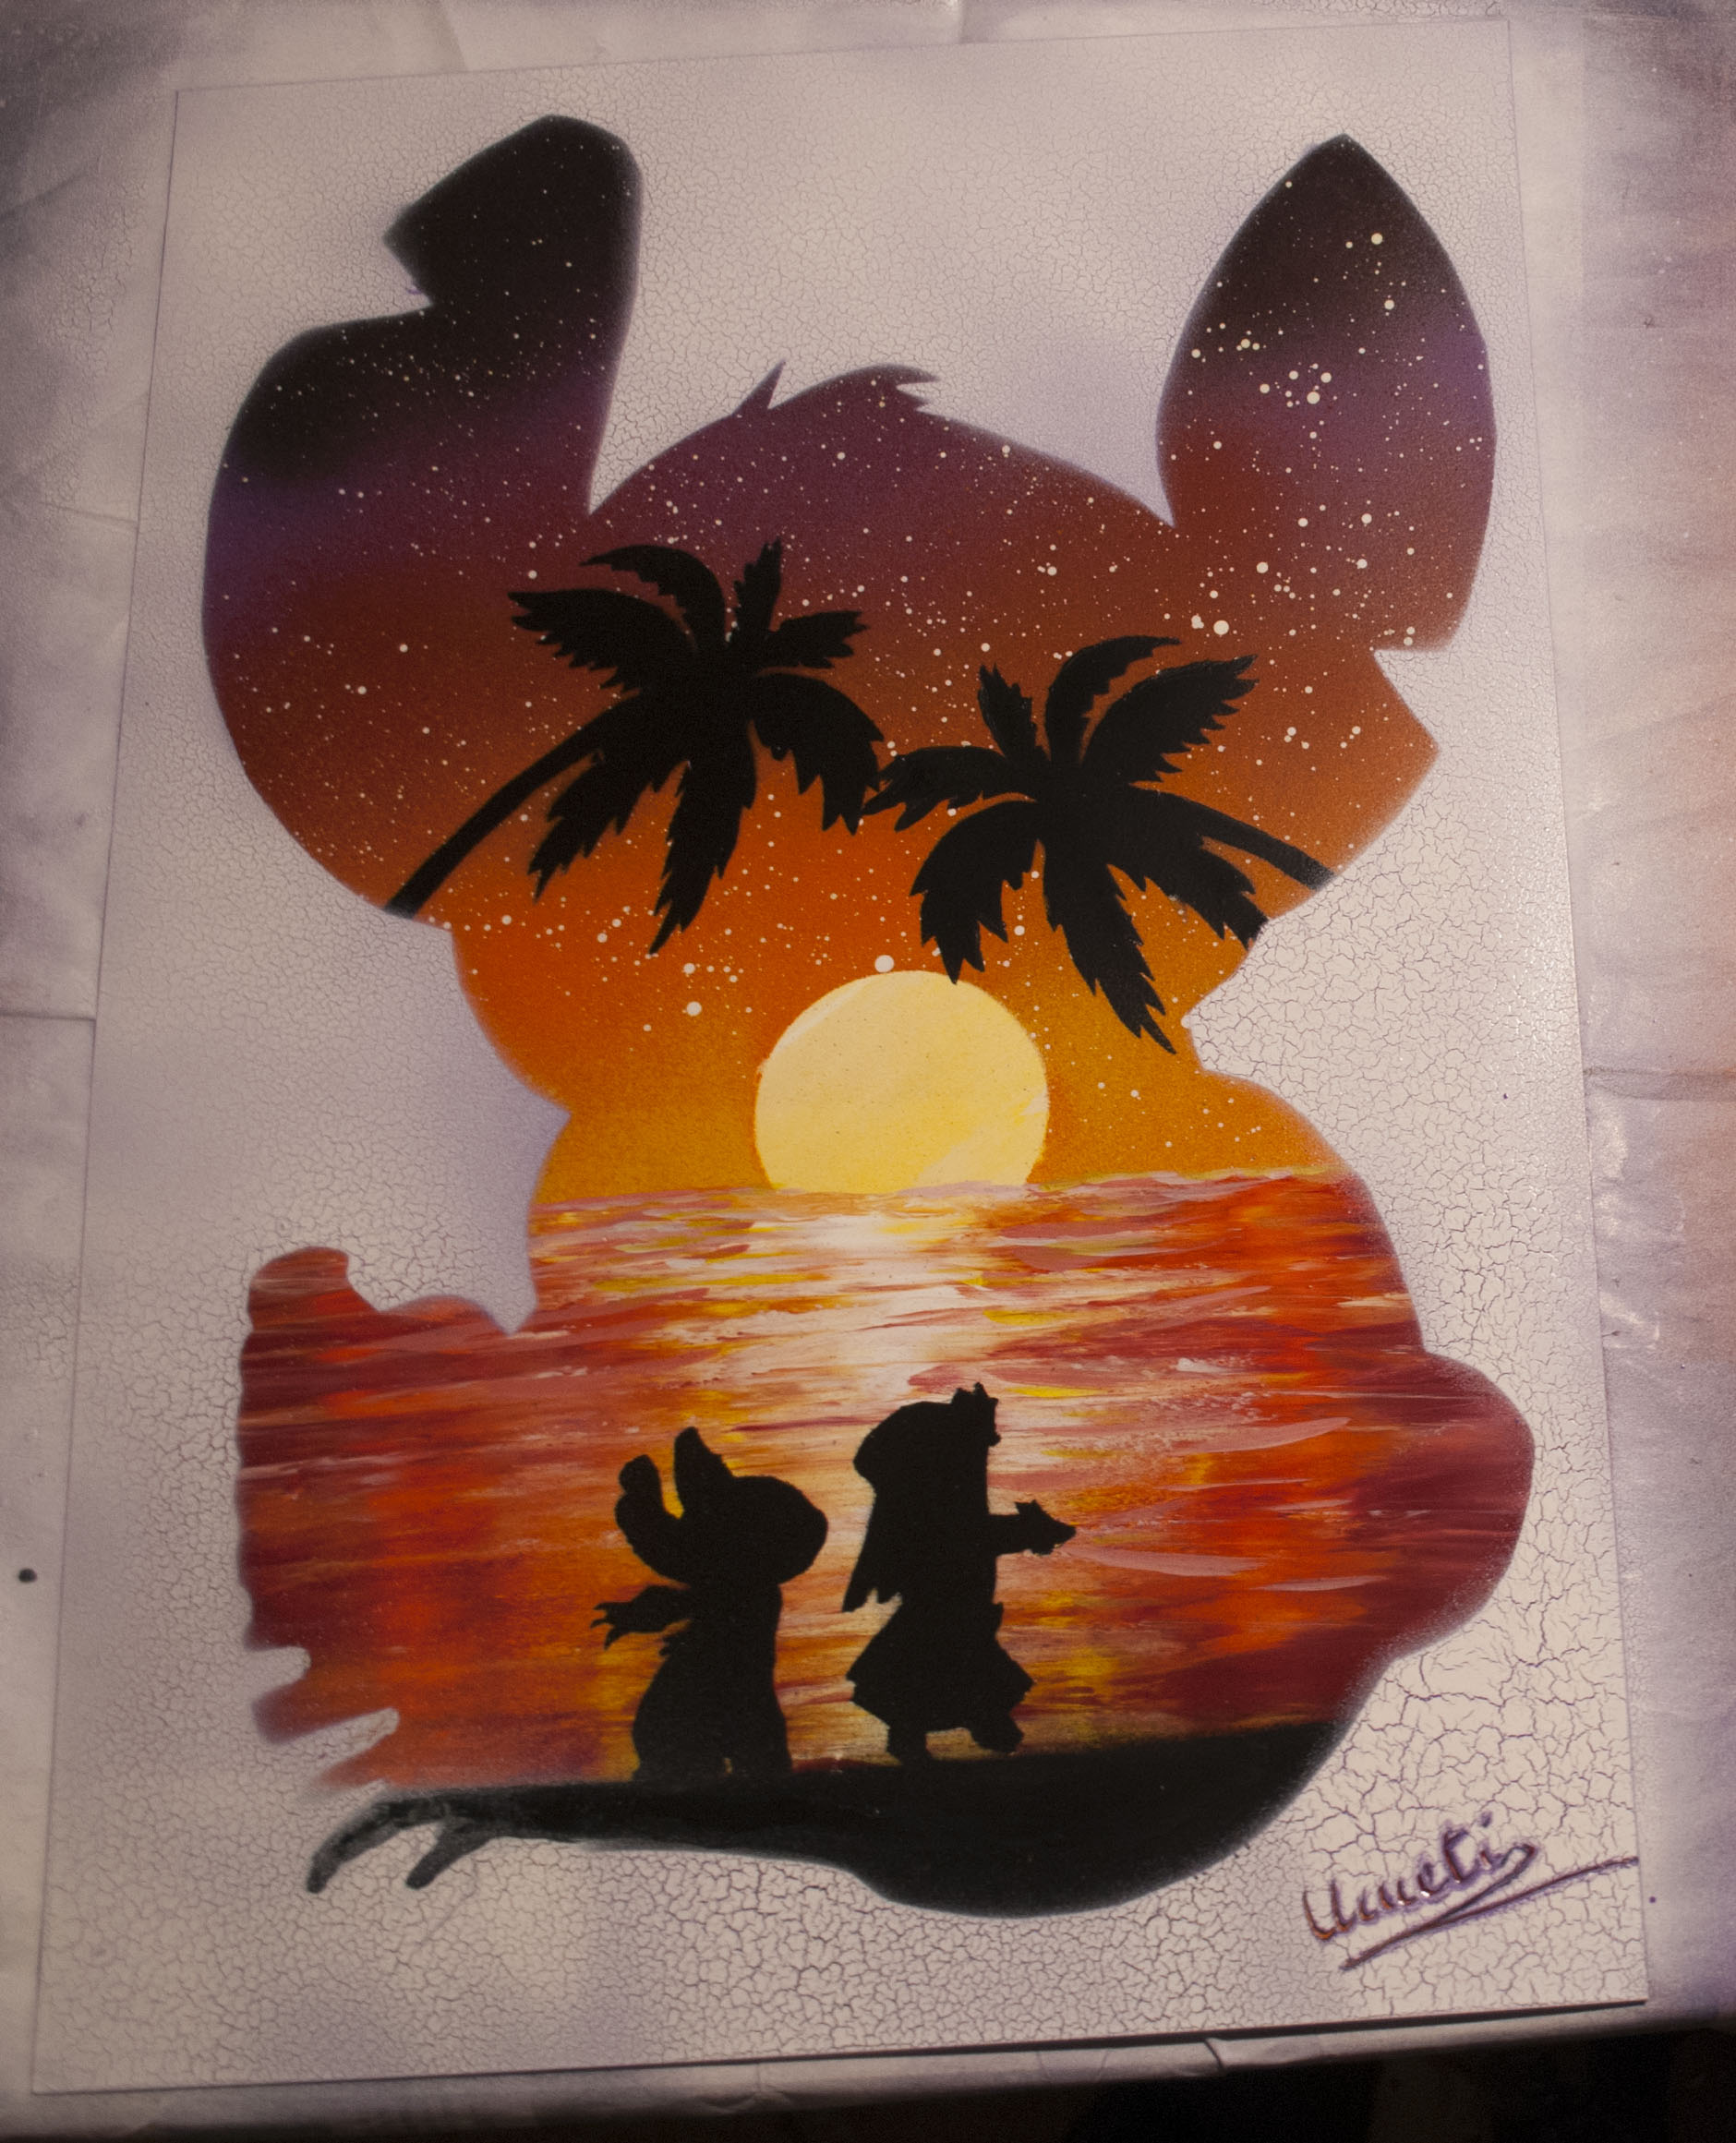 Lilo & Stitch Spray paint art by Ucuetis